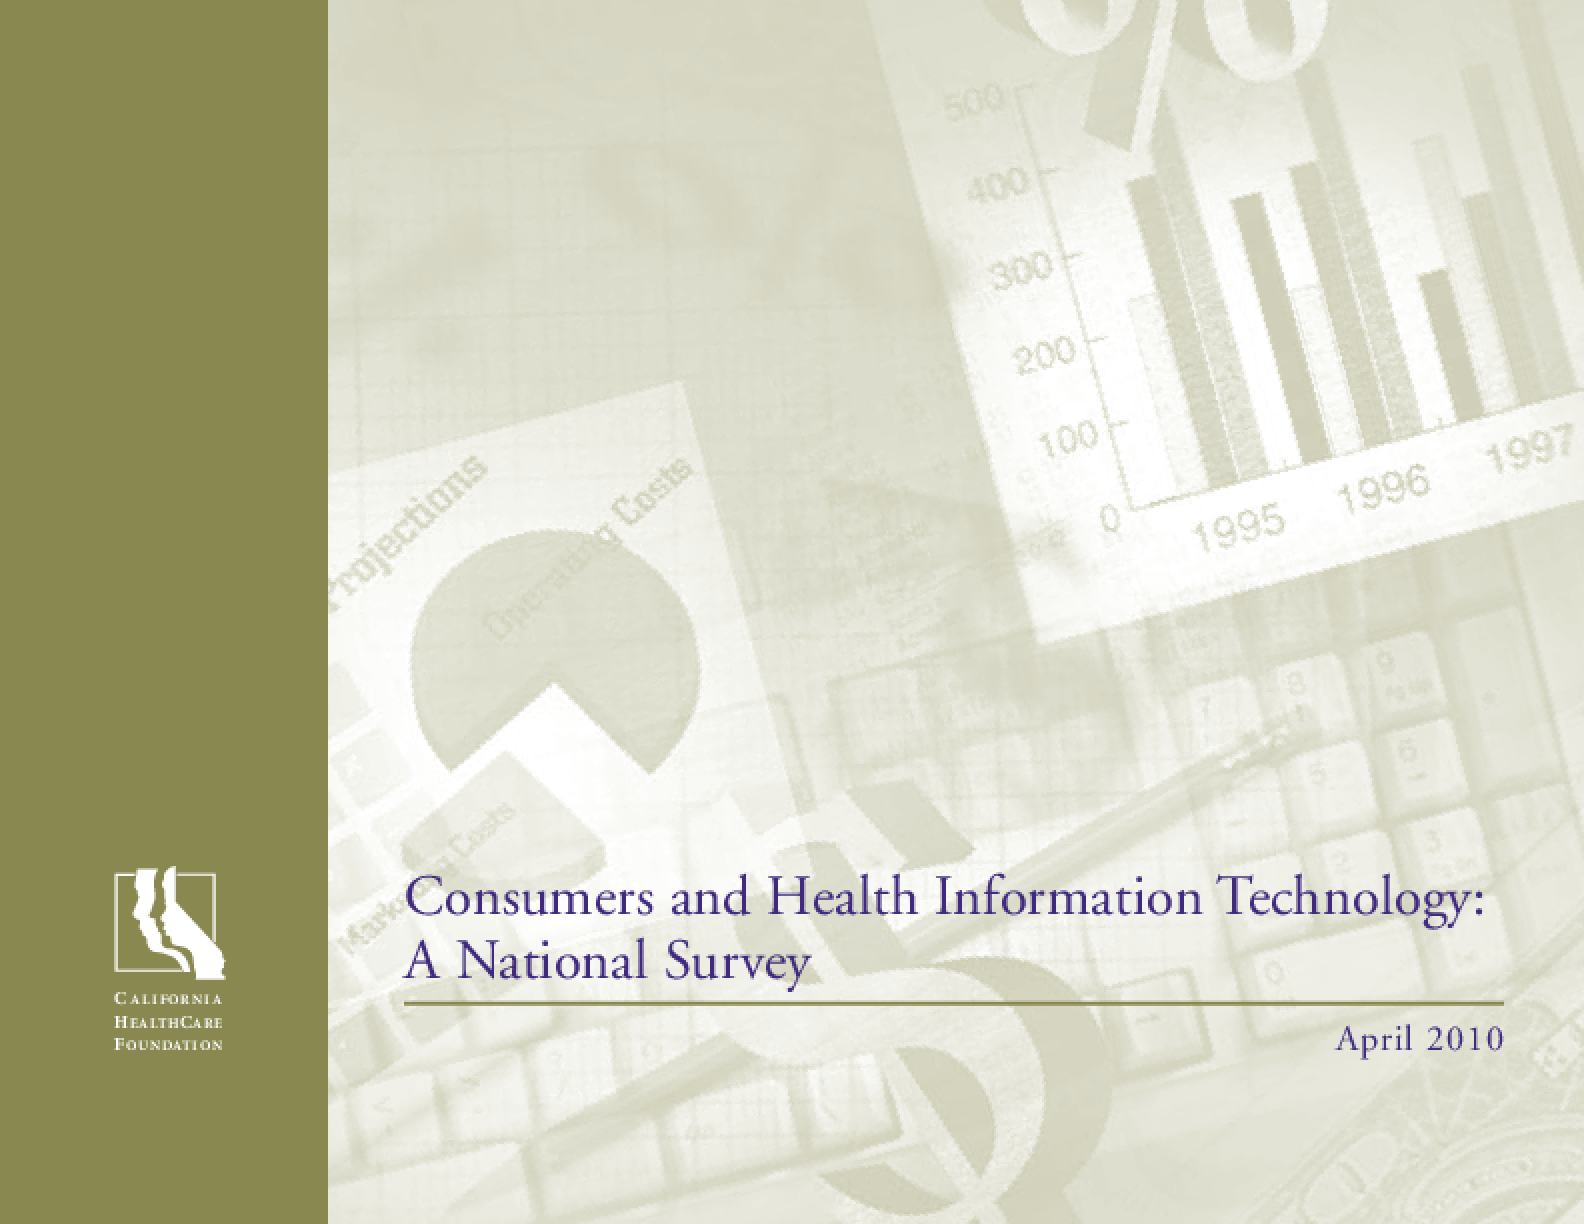 Consumers and Health Information Technology: A National Survey